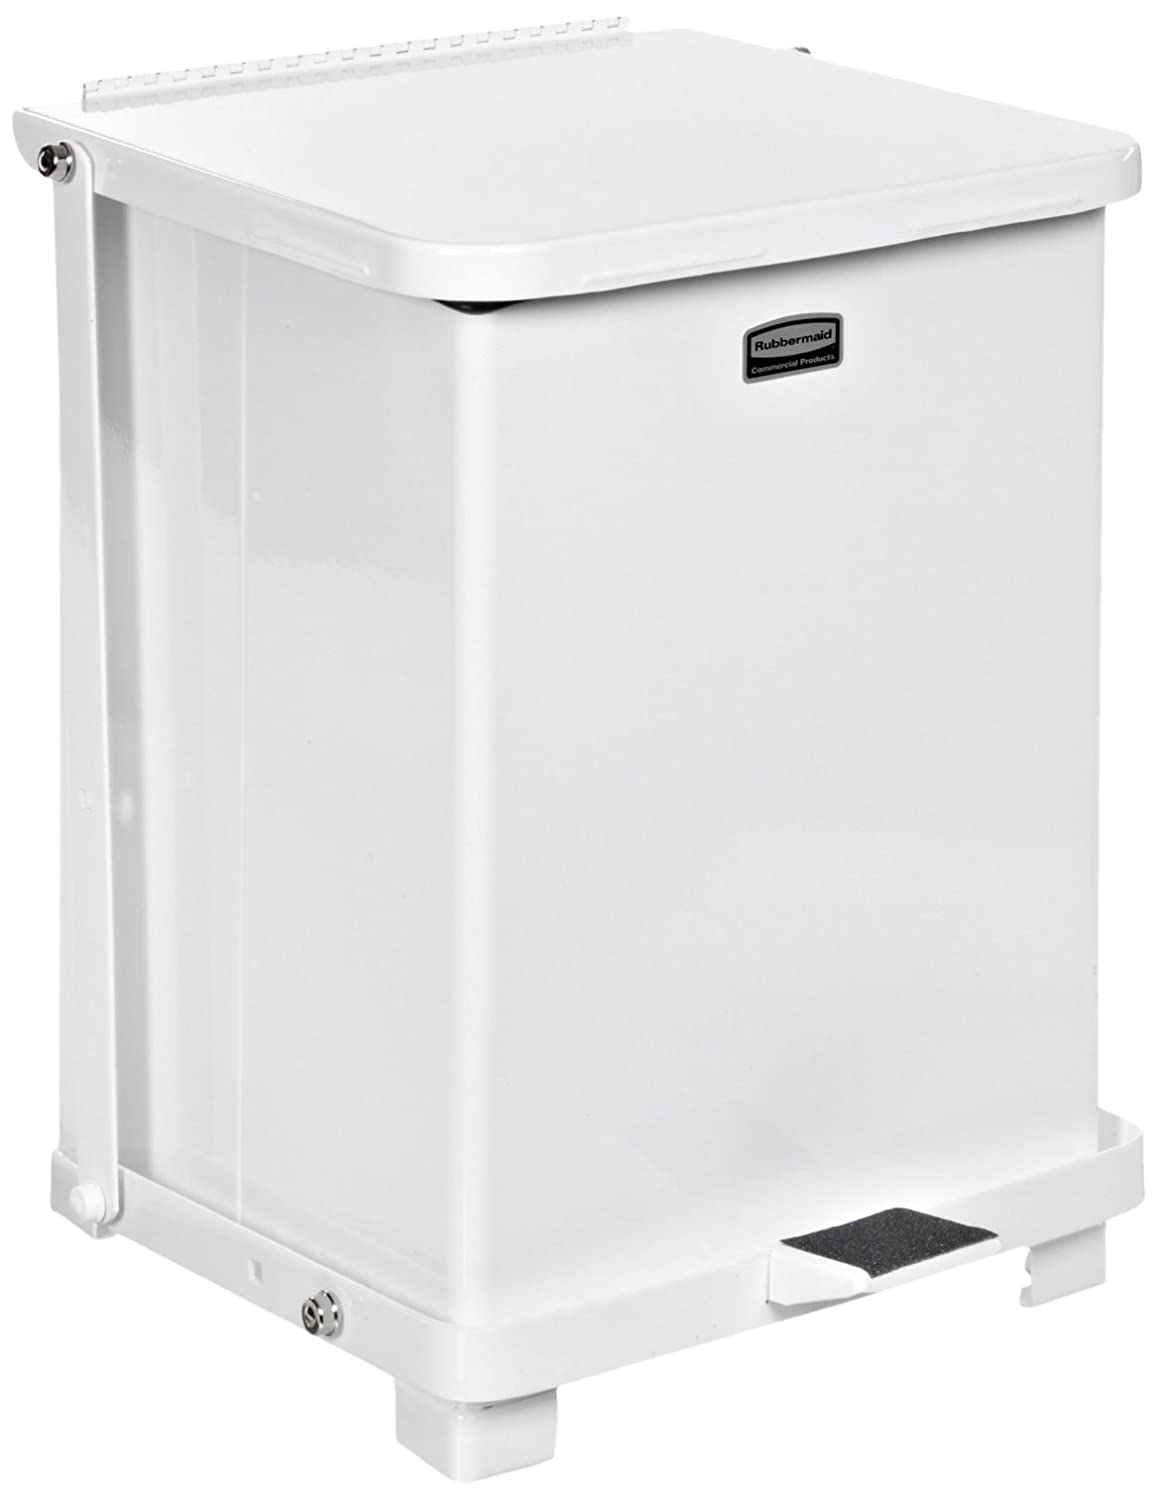 Rubbermaid Commercial Defenders Step-On Trash Can with Plastic Liner, 40-Gallon, White